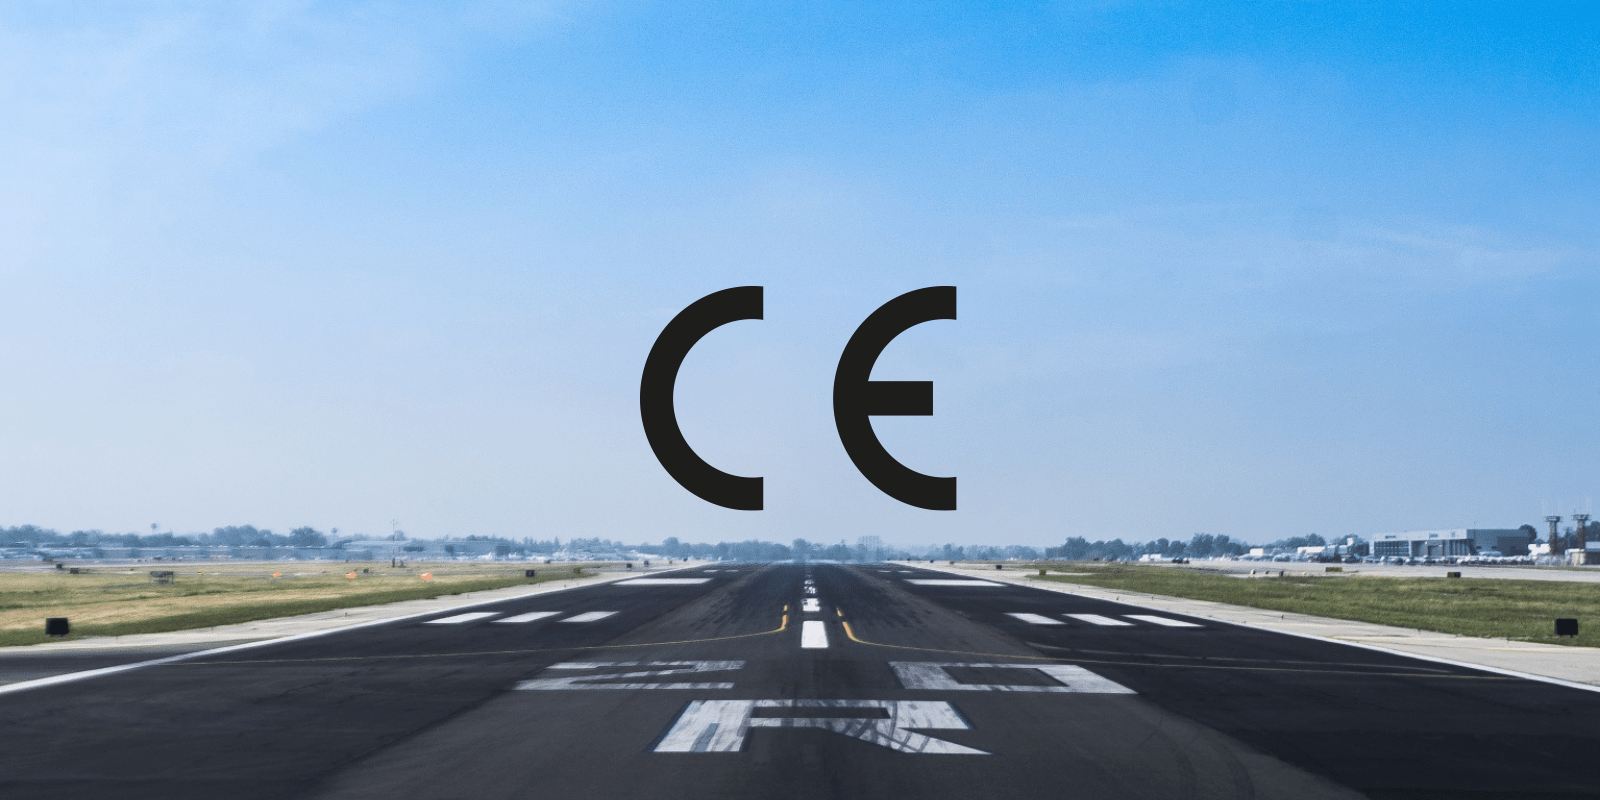 We are proud to announce that our Bird Scaring Cartridge range has now received CE marking.